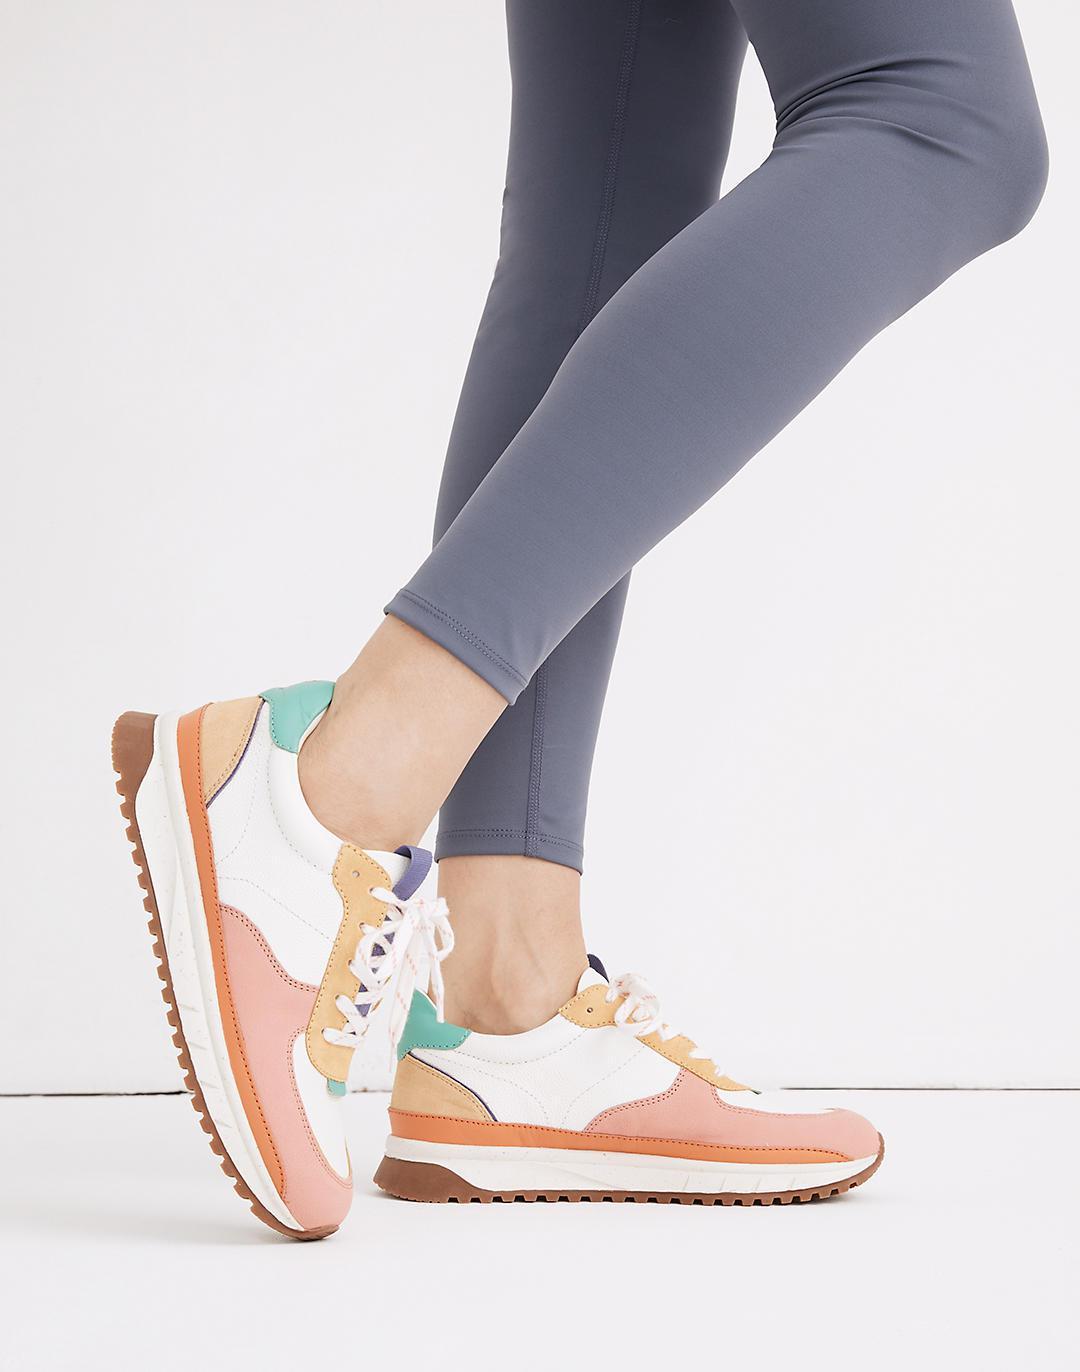 Kickoff Trainer Sneakers in Colorblock Leather 3